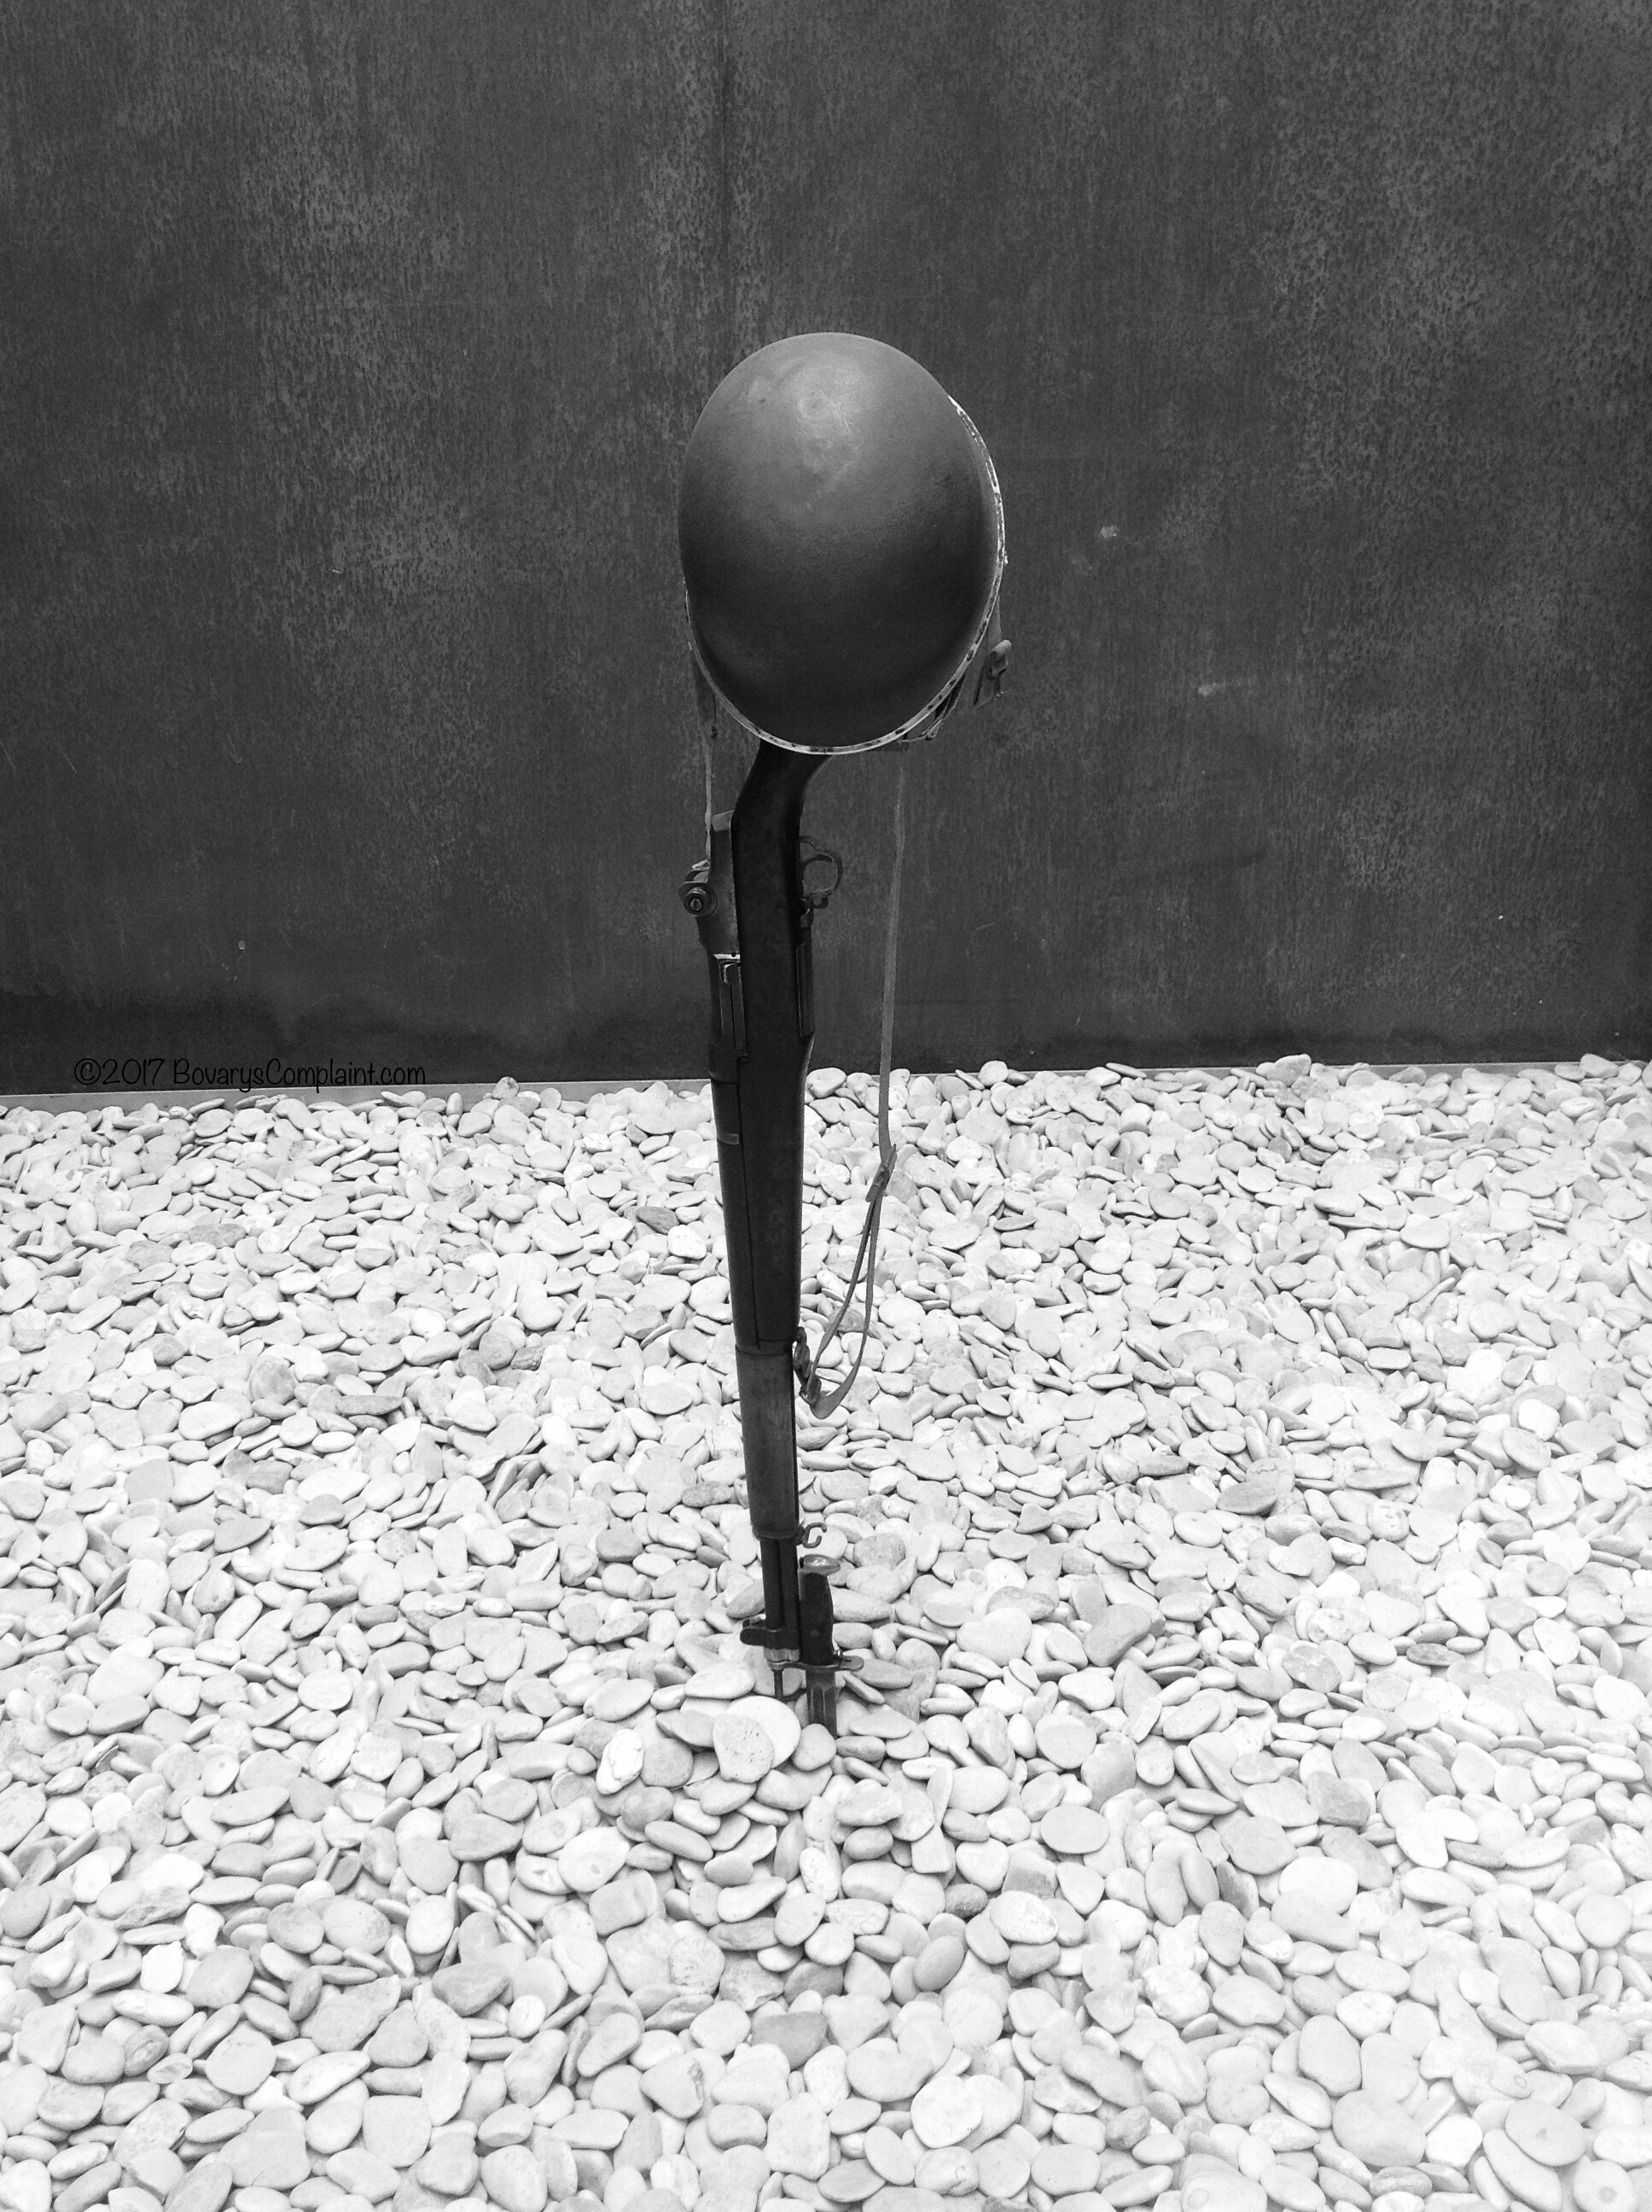 Black and White photo of World War 2 Army hat mounted on gun from Normandy, France.